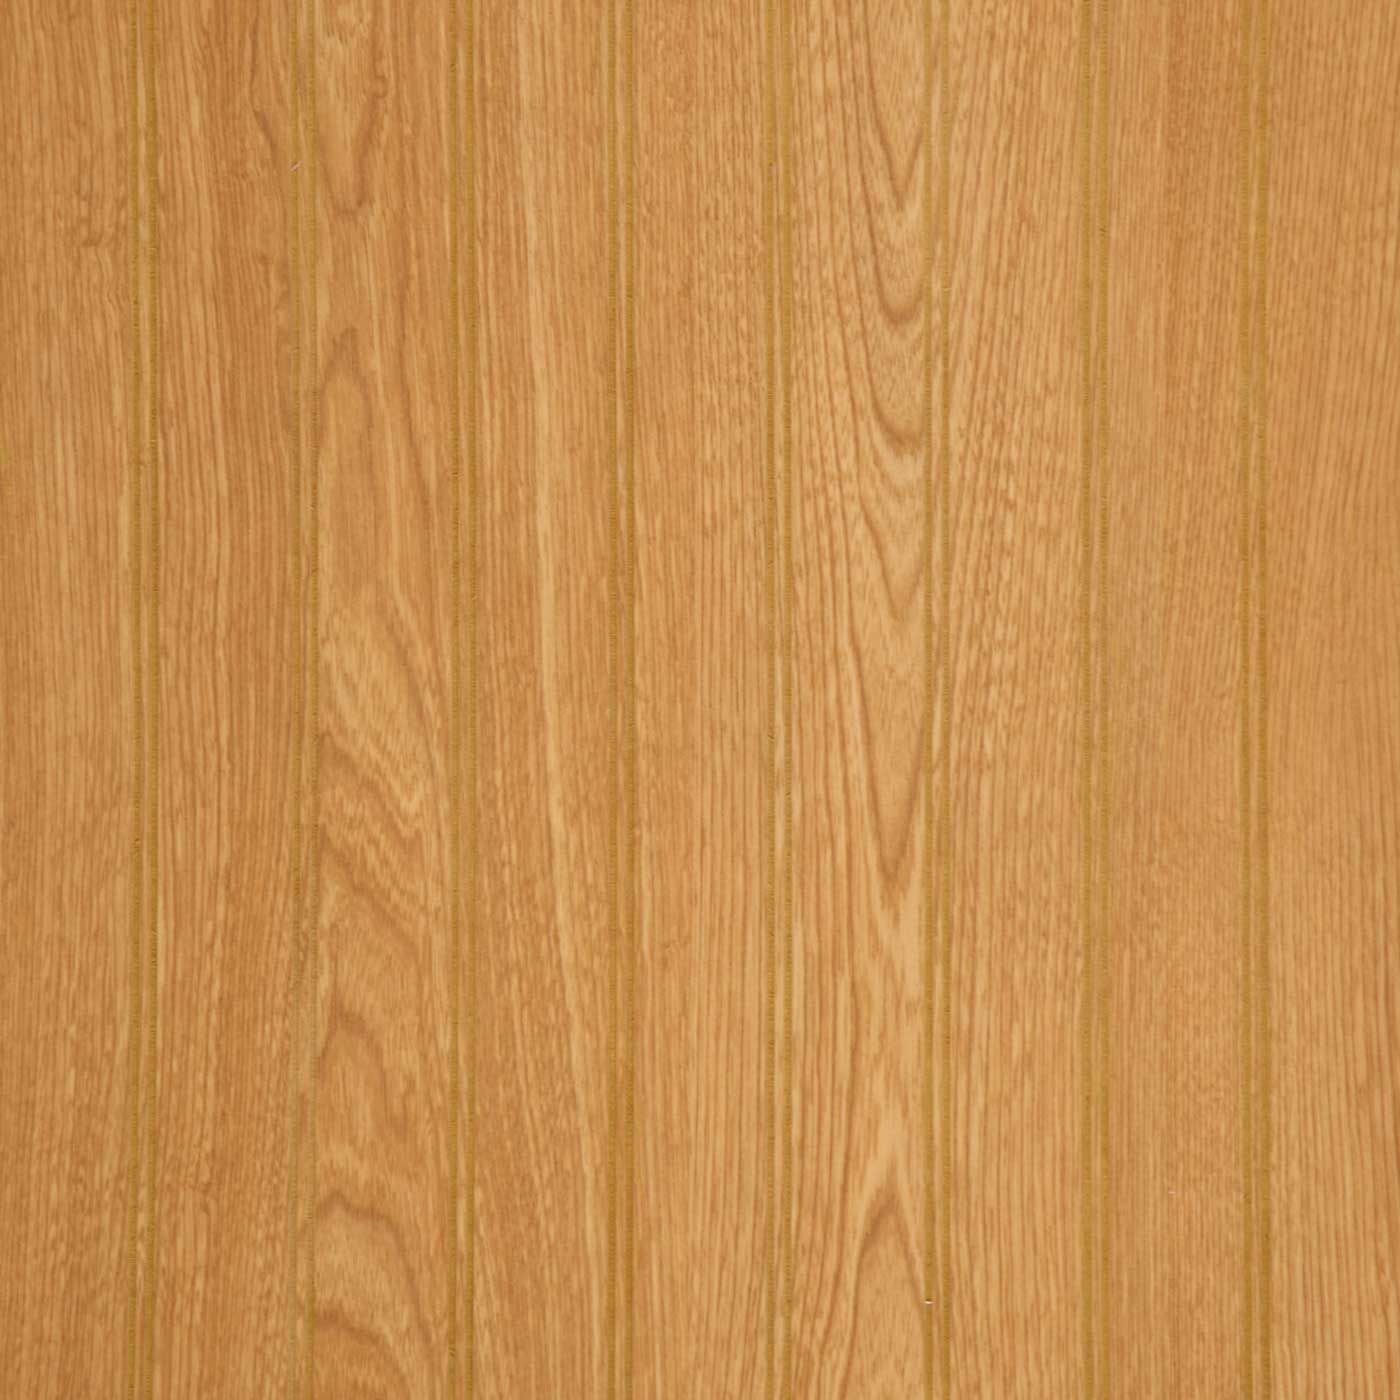 Oak Wall Panelling Empire Oak Beaded Panels 4 X 8 Empire Plywood Walls And